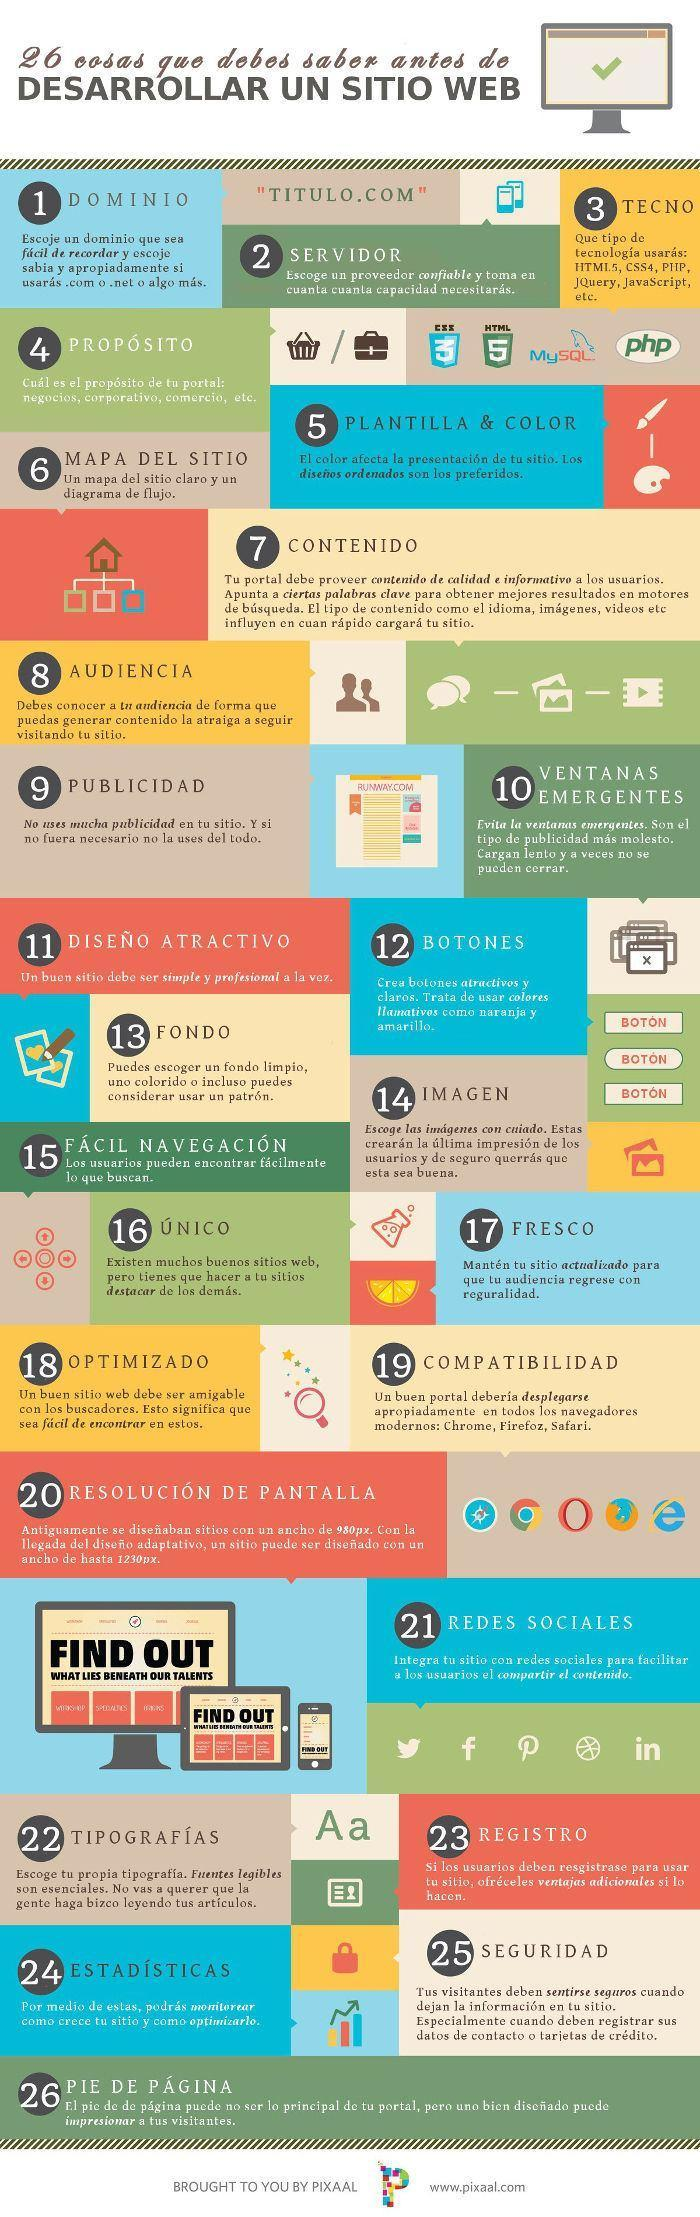 26-Things-to-Note-Before-You-Develop-a-Website1espanol700px